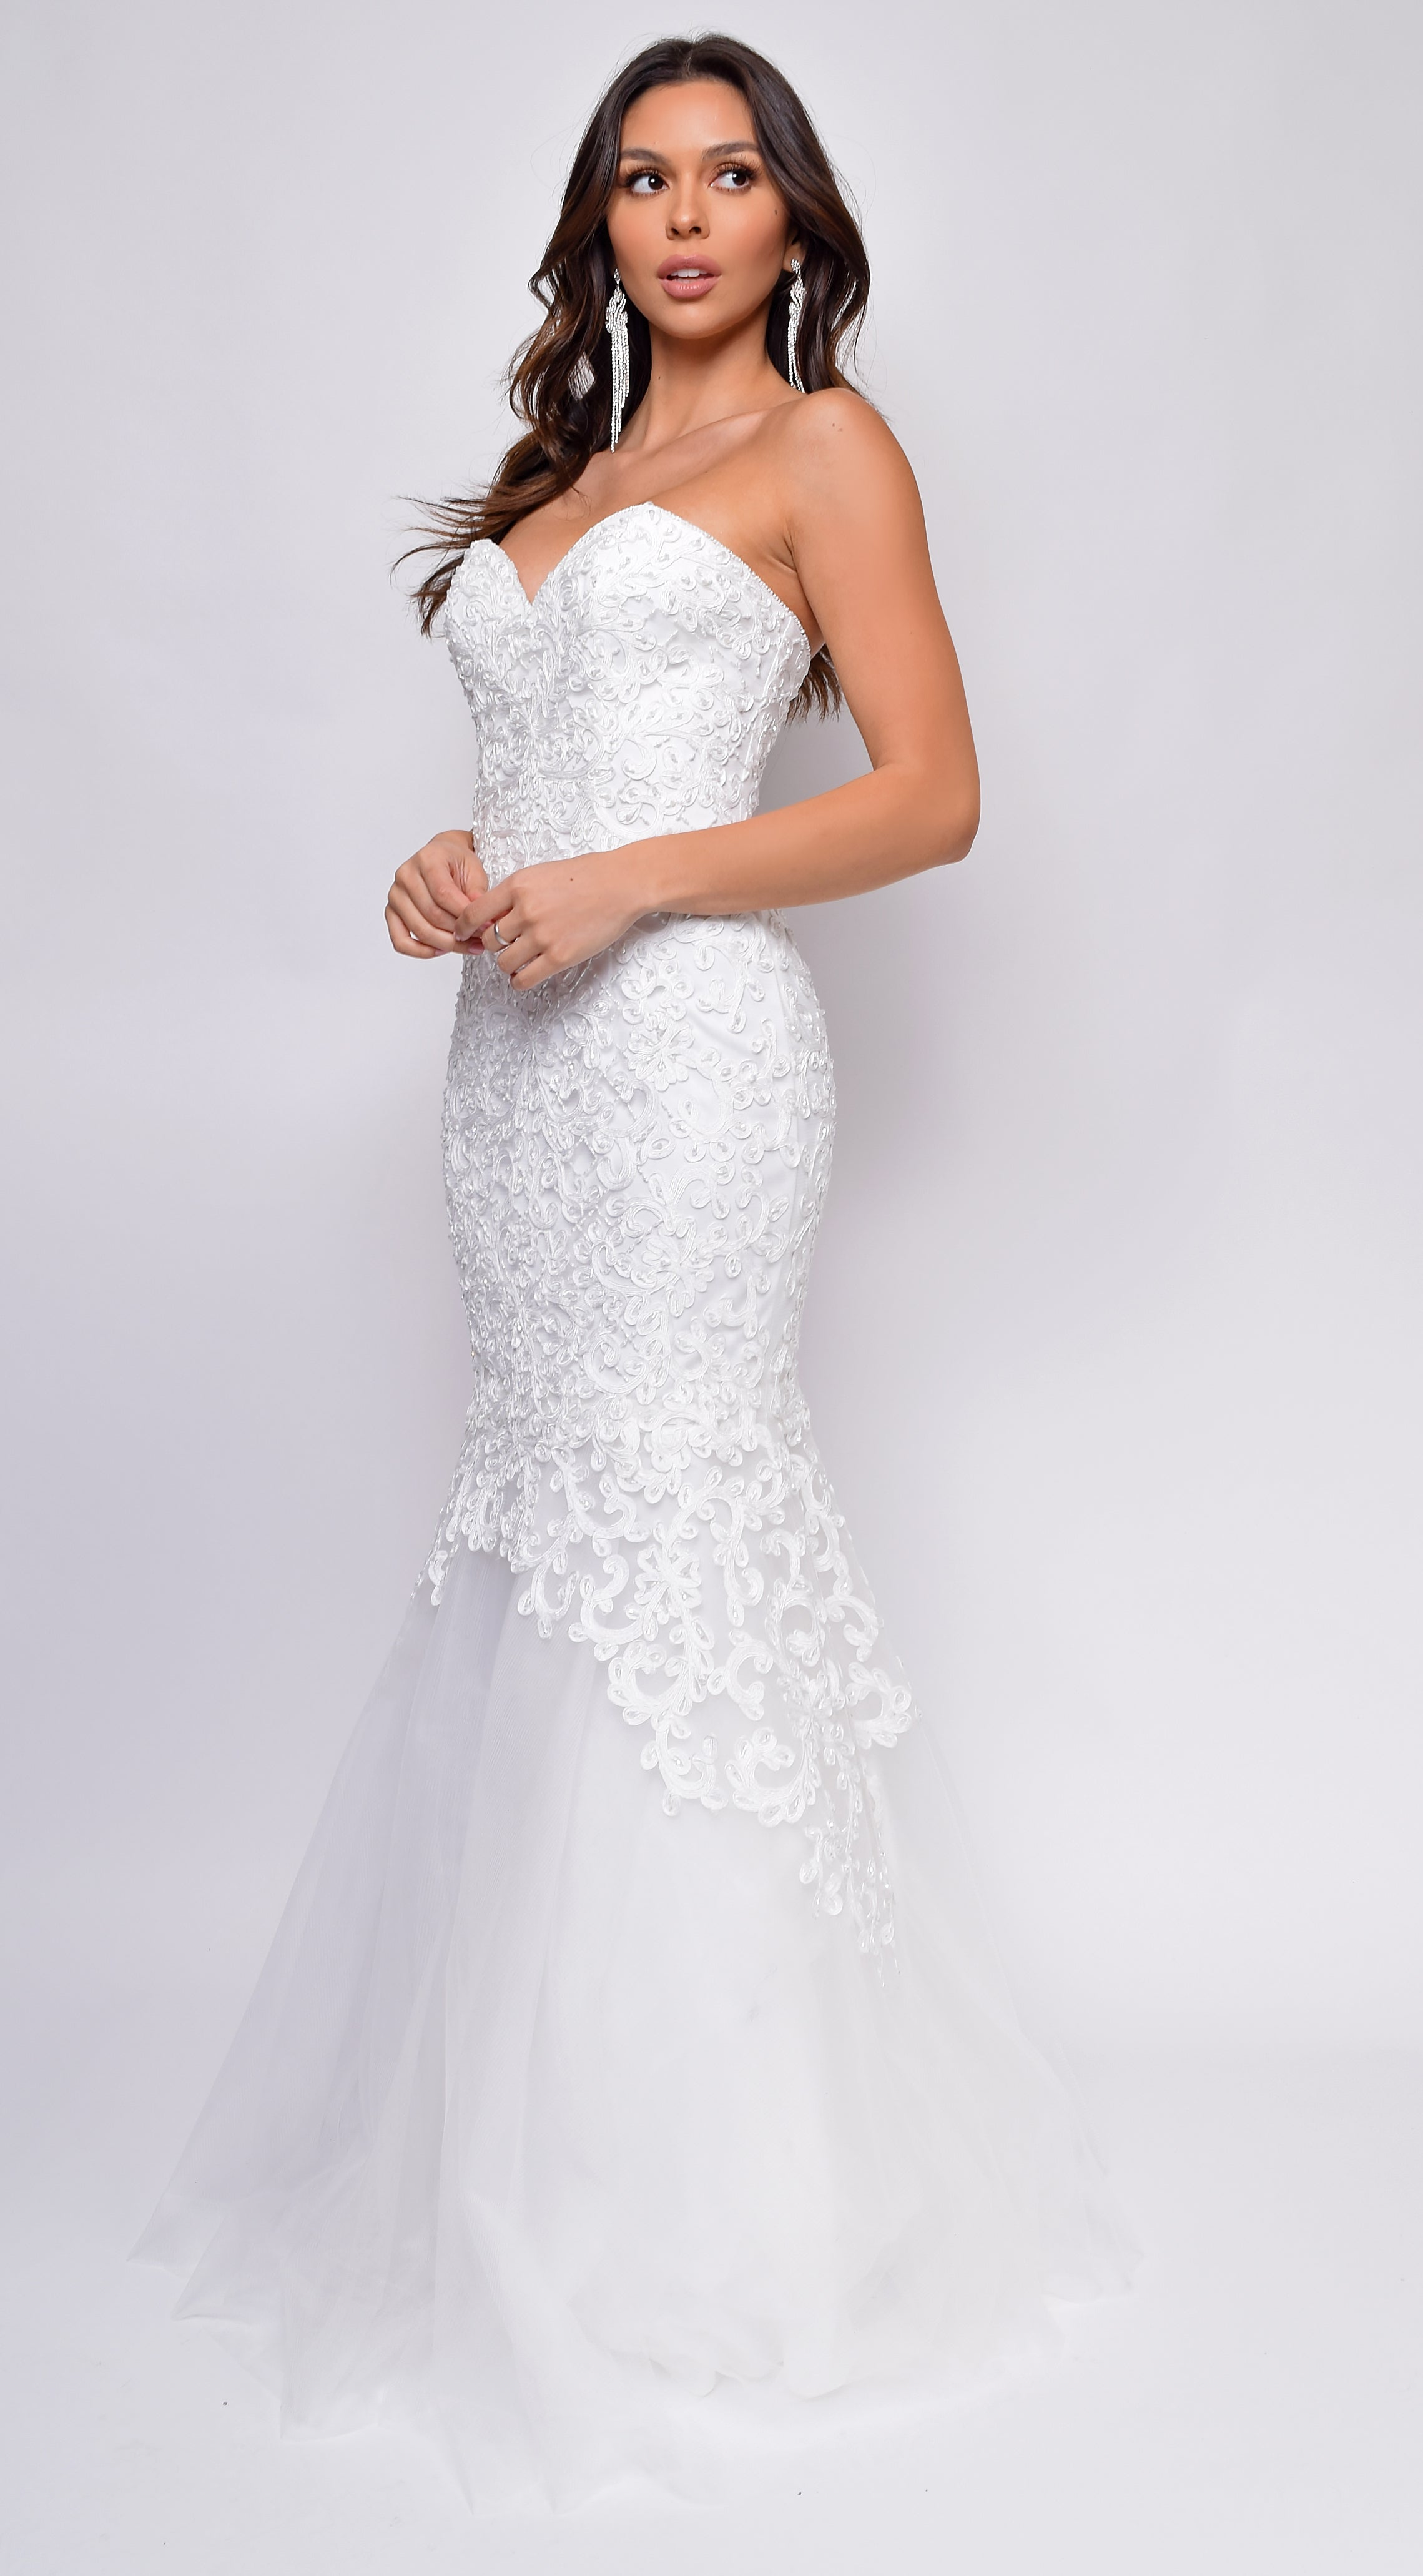 Modeca Sweetheart Neckline Strapless Beaded Lace Tulle Mermaid Bridal Gown